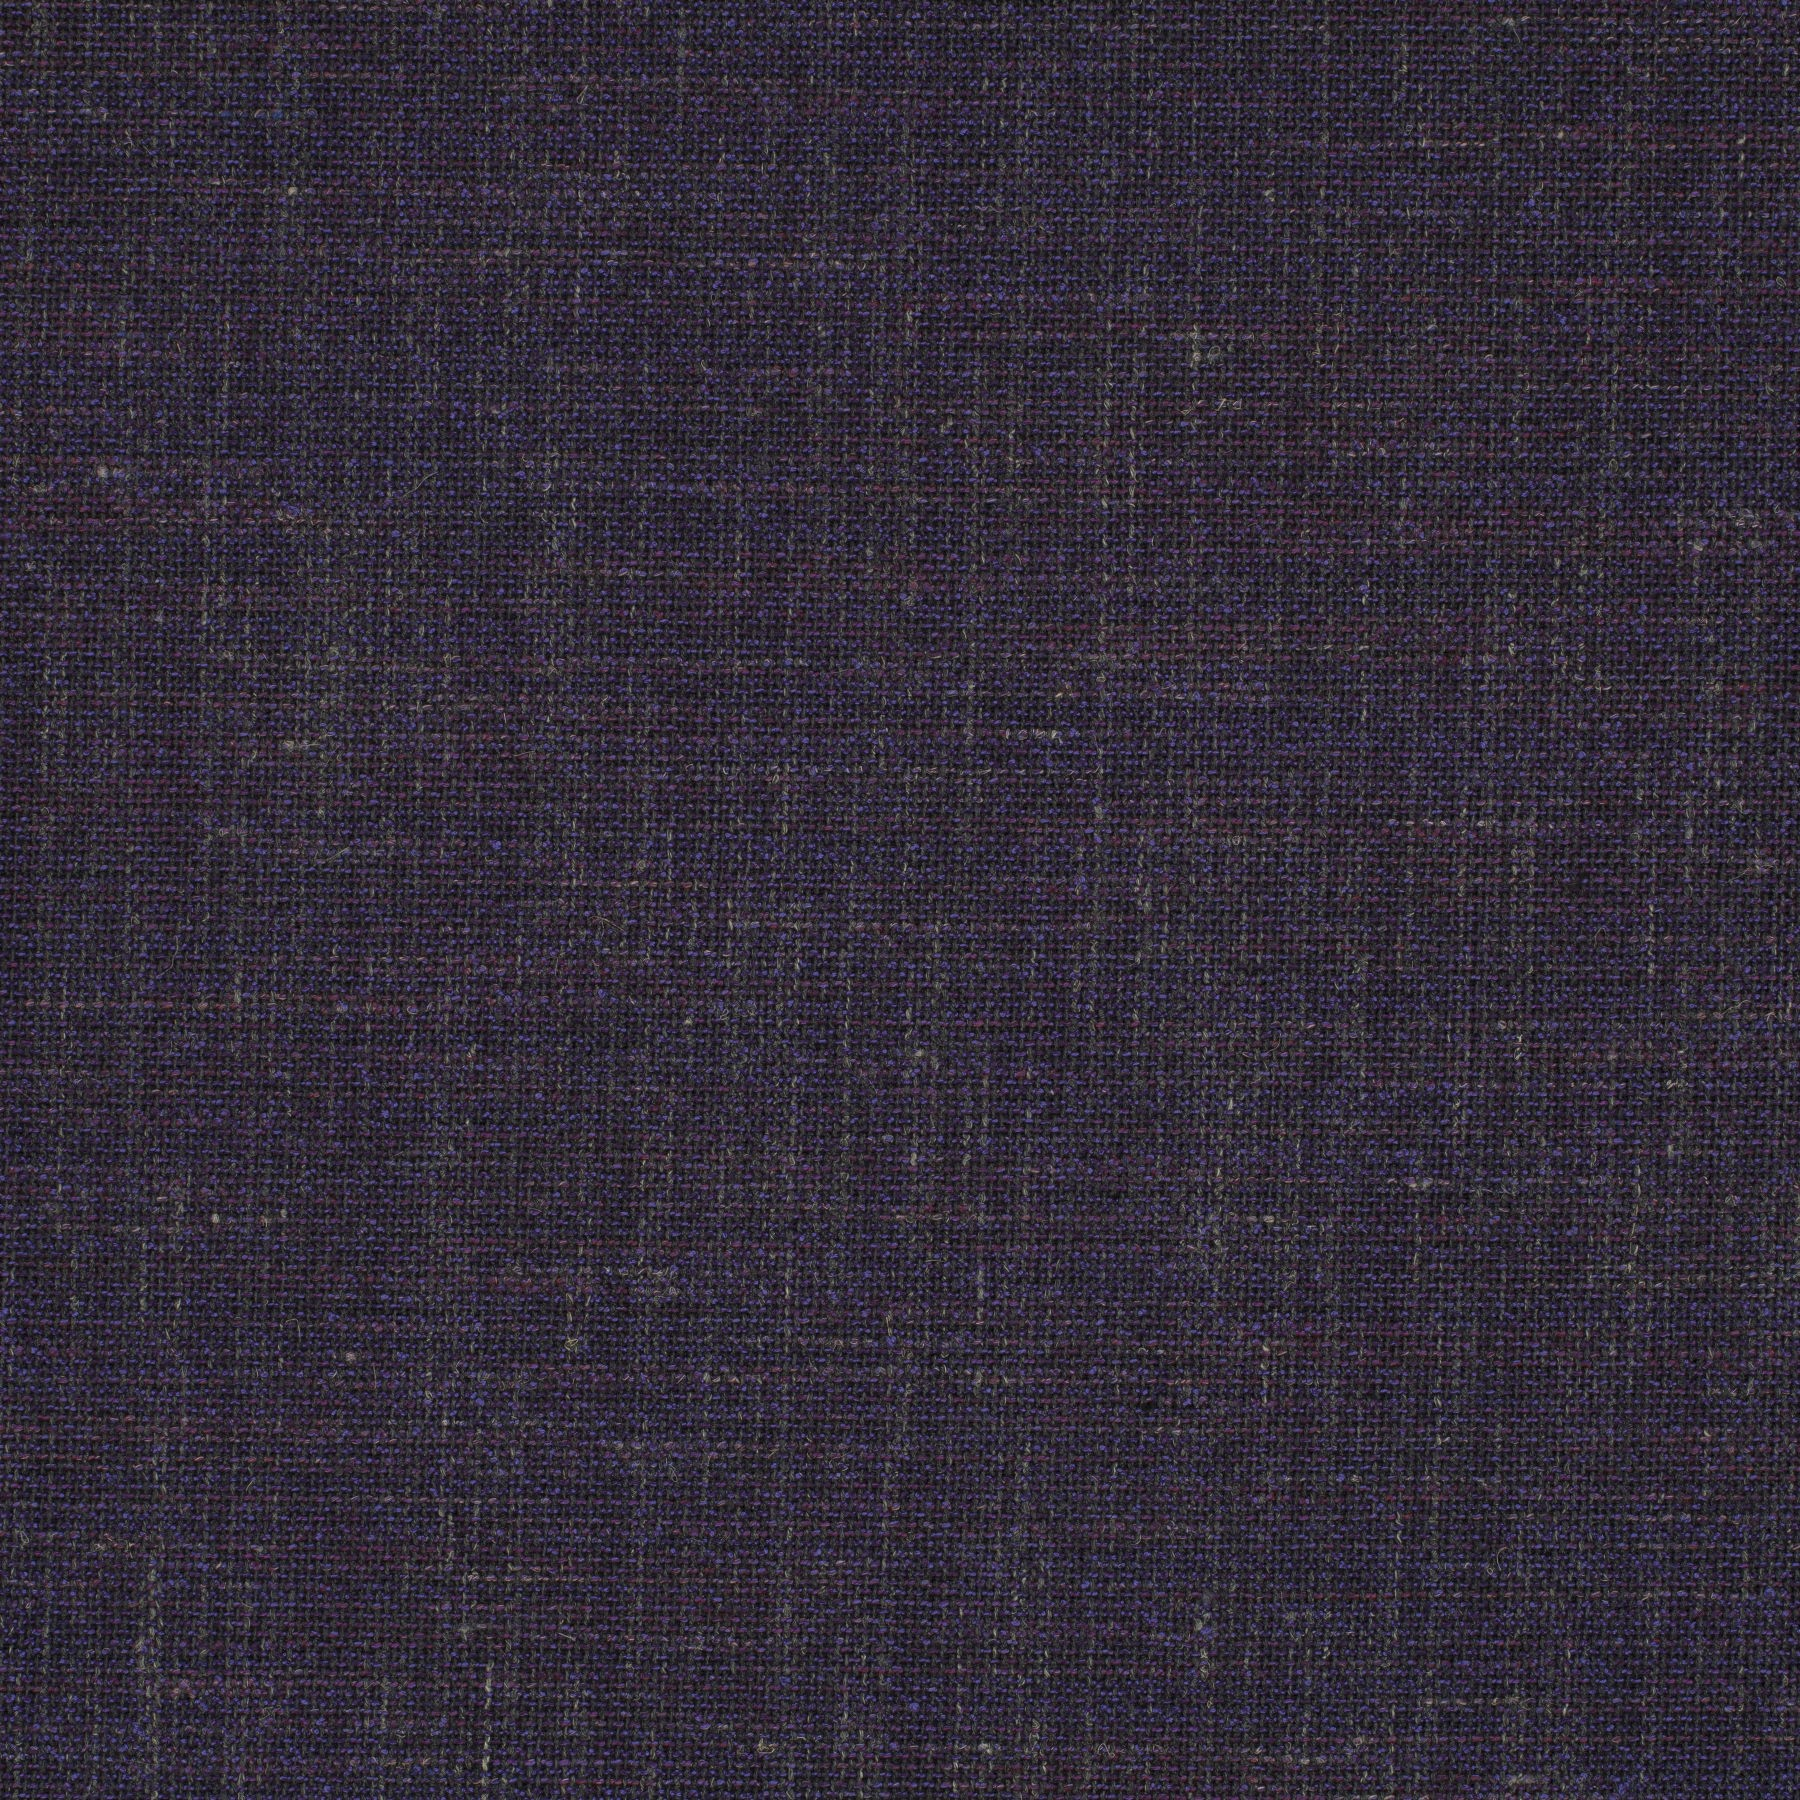 upholstery fabric stan 9 2234 081 jab anstoetz fabrics. Black Bedroom Furniture Sets. Home Design Ideas